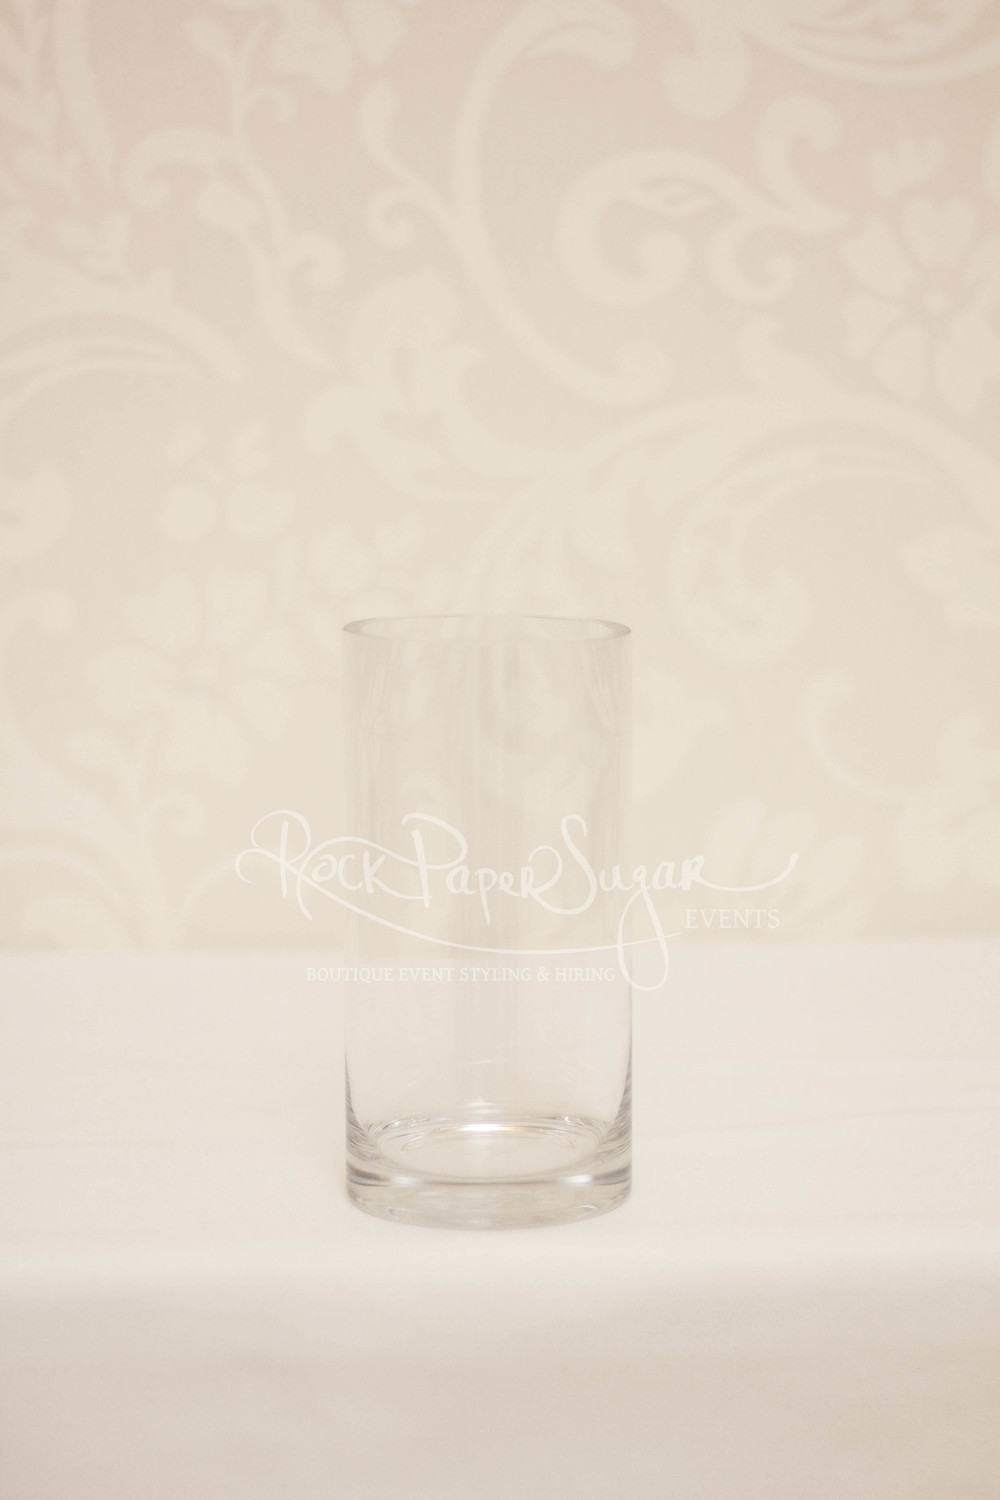 Rock Paper Sugar Events Glassware 009.jpg